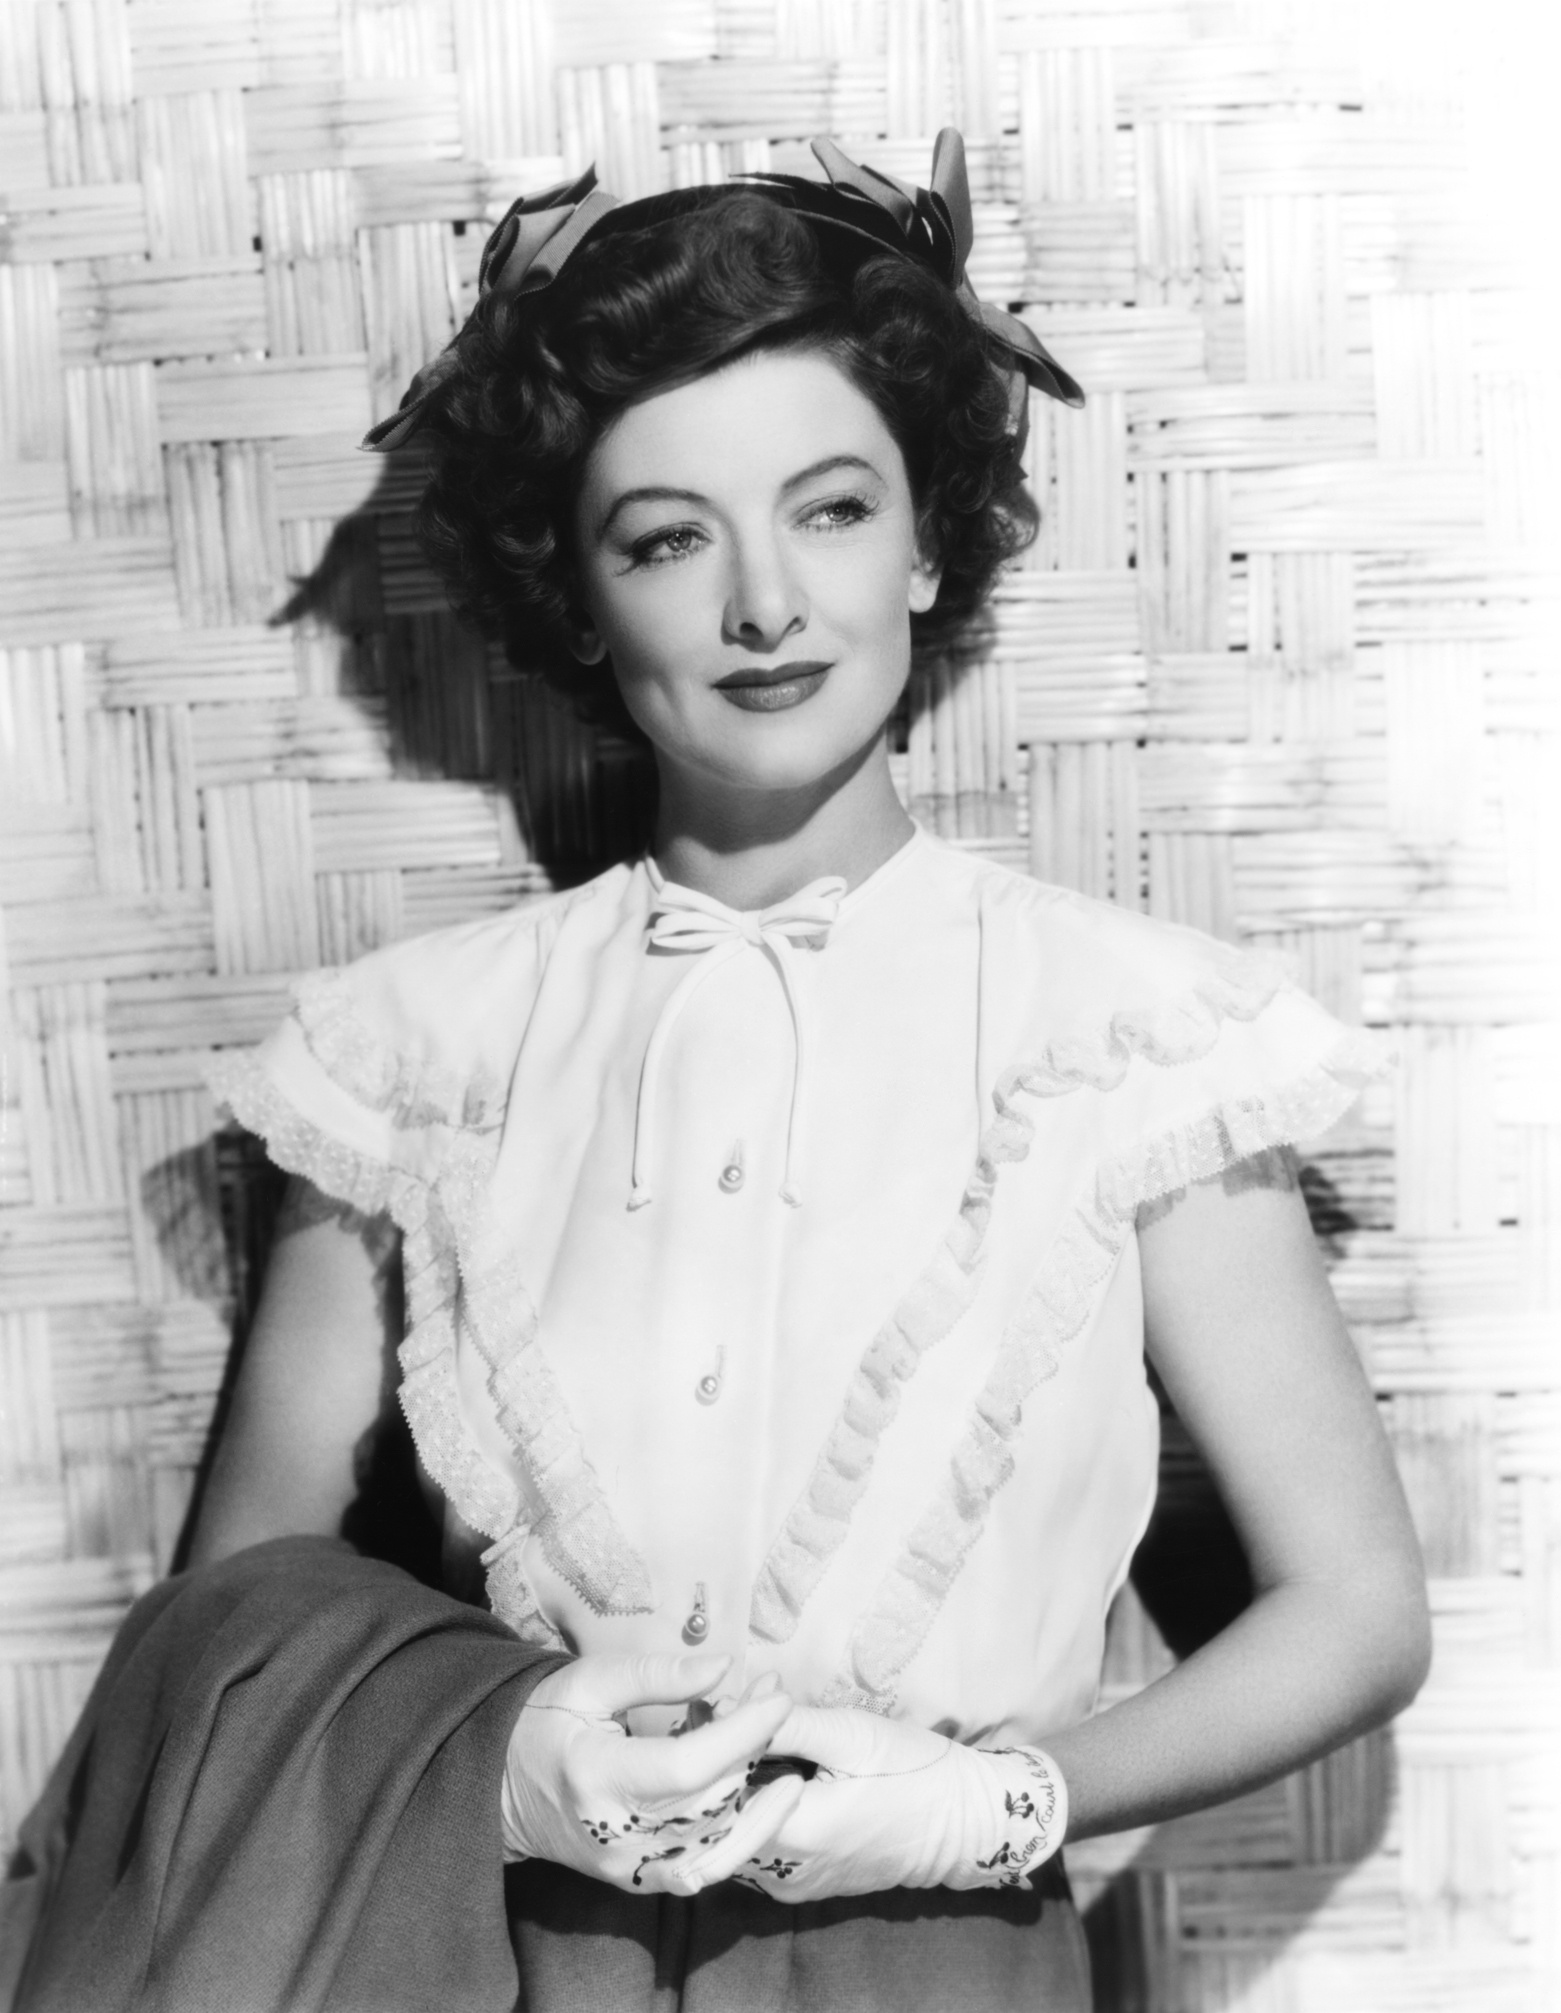 myrna loy cause of deathmyrna loy autobiography, myrna loy, myrna loy and william powell, myrna loy quotes, myrna loy and william powell movies, myrna loy actress, myrna loy height, myrna loy thin man, myrna loy band, myrna loy center, myrna loy movies, myrna loy imdb, myrna loy and william powell relationship, myrna loy measurements, myrna loy columbo, myrna loy statue, myrna loy films, myrna loy cause of death